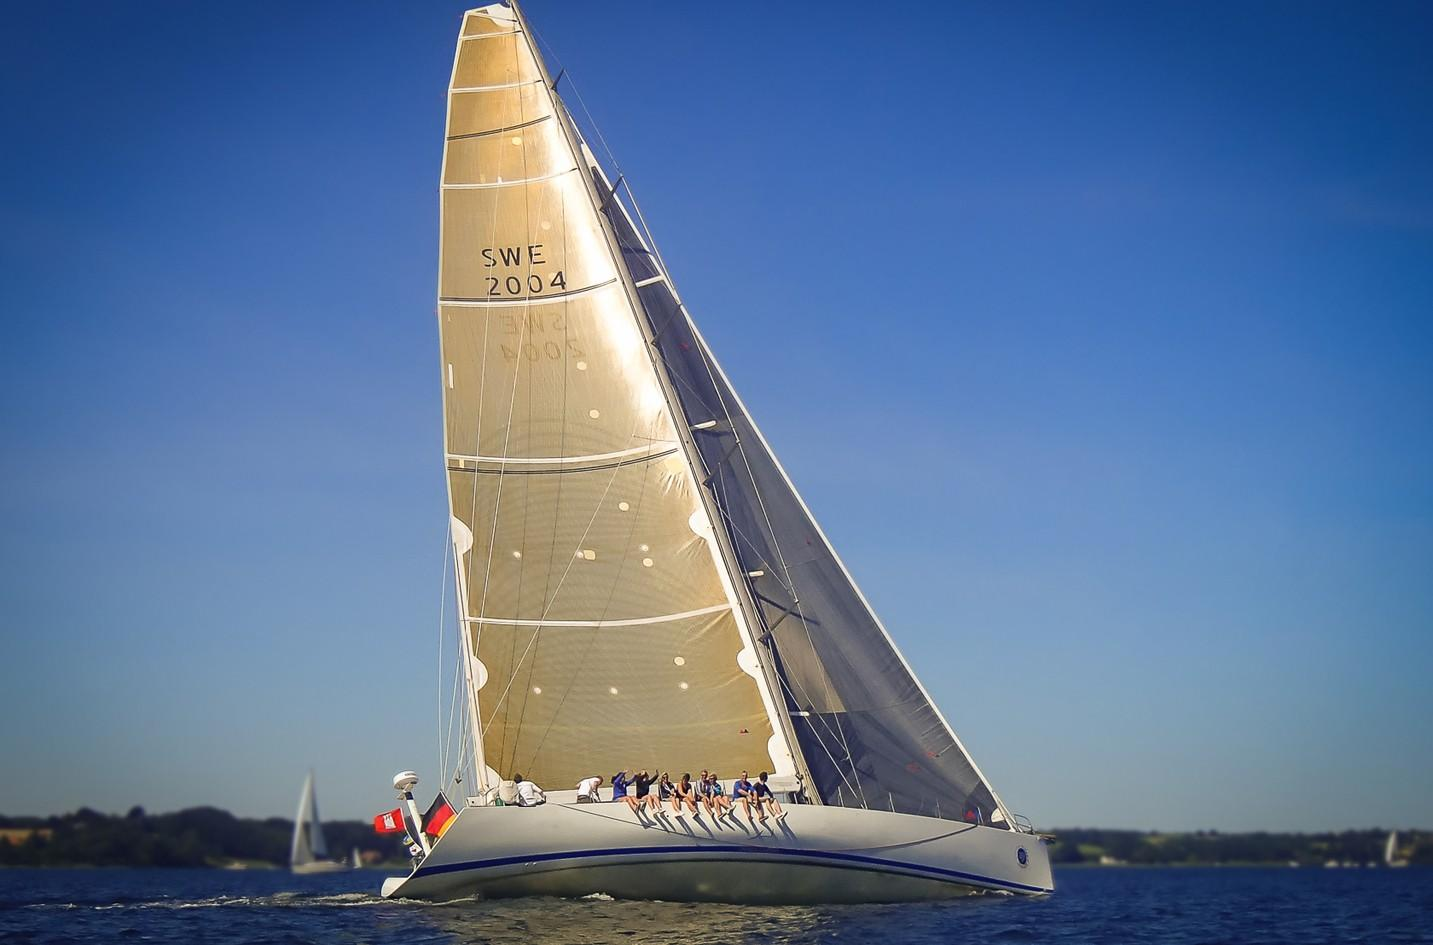 Sail Boat Engine Wiring Harness Smart Electrical Diagram 1989 Custom Whitbread Maxi Racer One Off For Salerhyachtworld